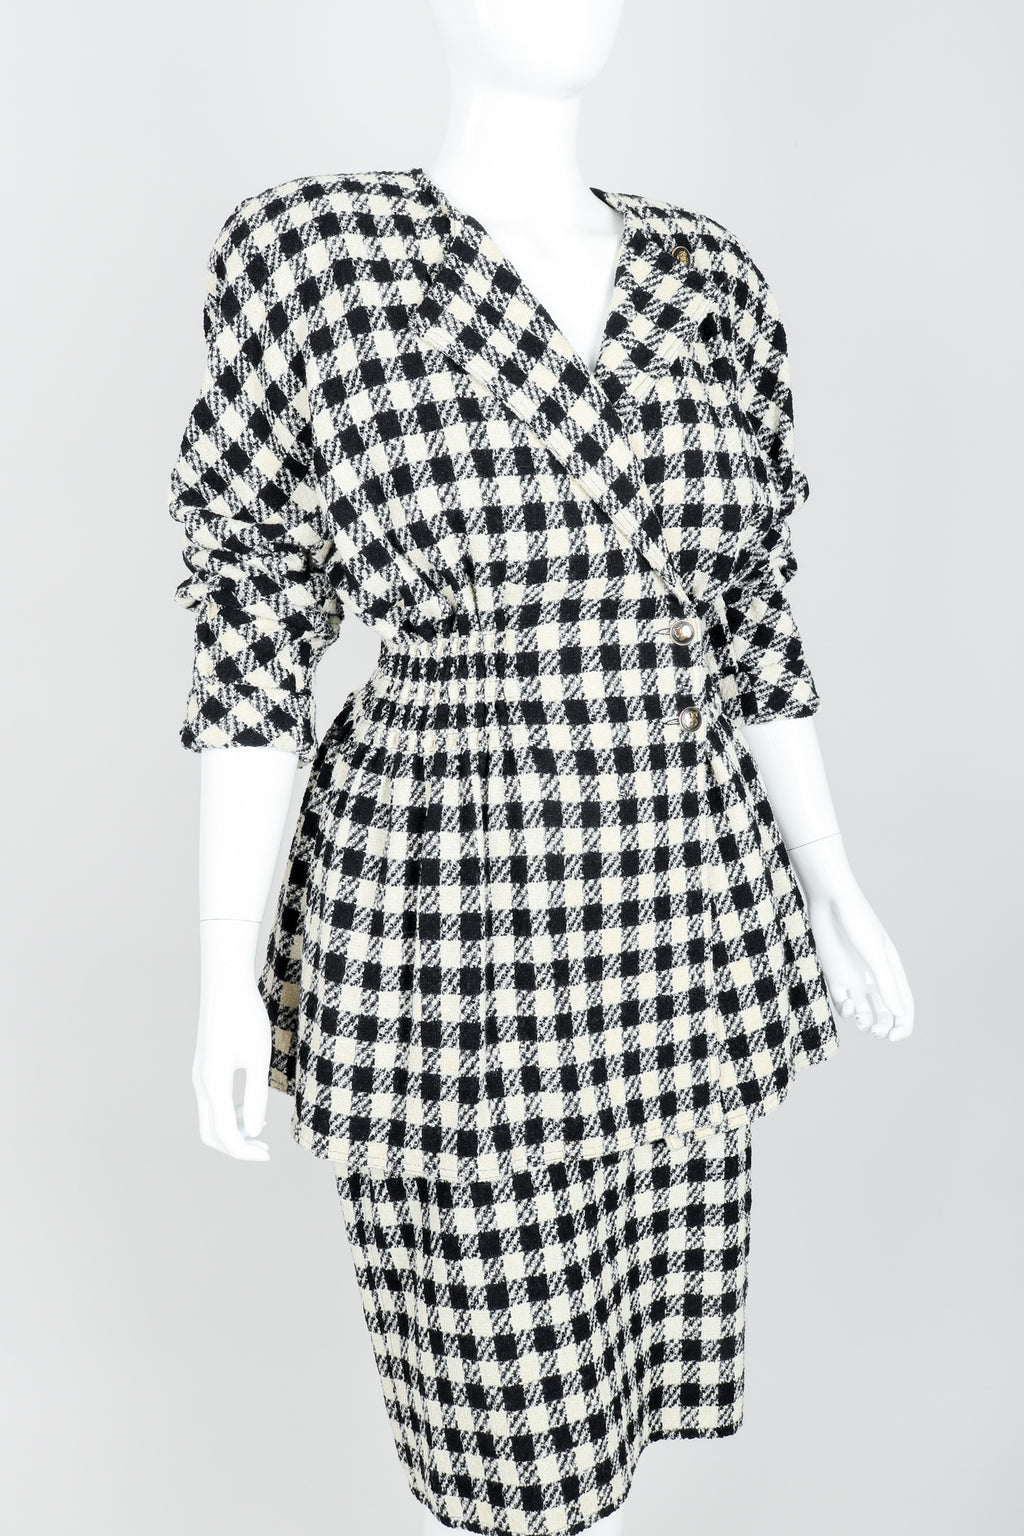 Vintage Sonia Rykiel Bouclé Buffalo Check Jacket & Skirt Set on mannequin crop angle at Recess